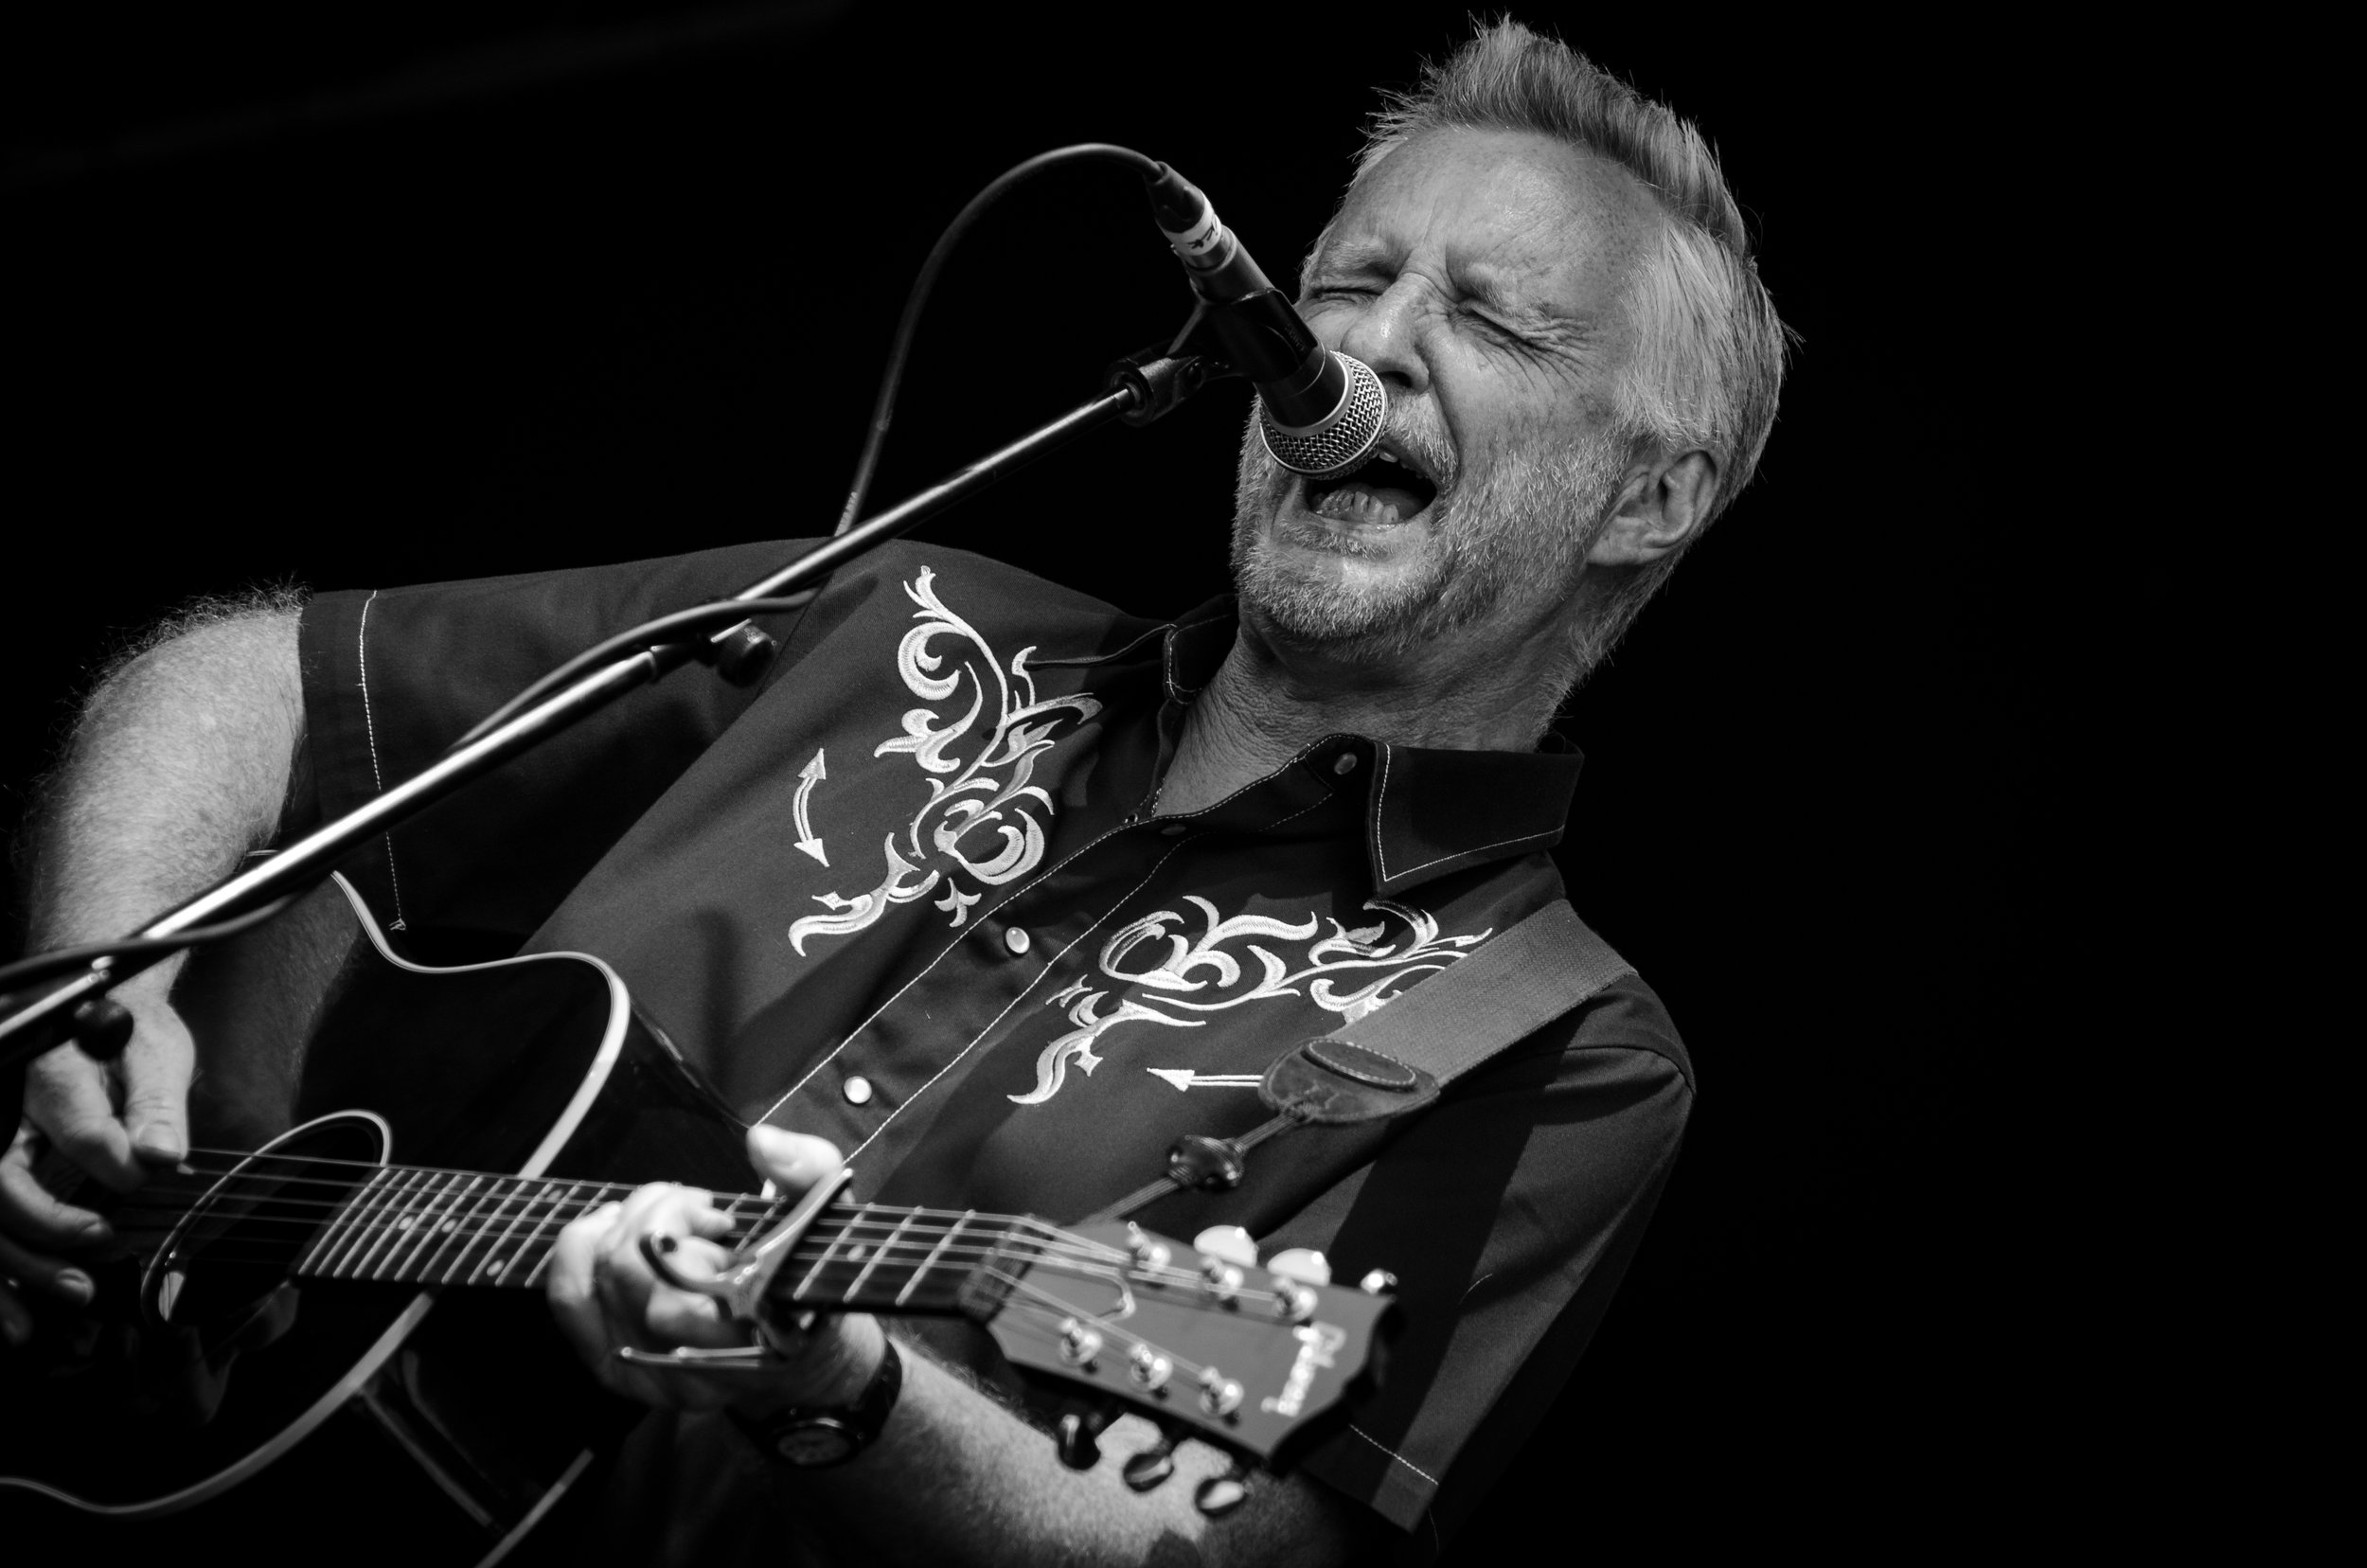 billy_bragg_2017.jpg